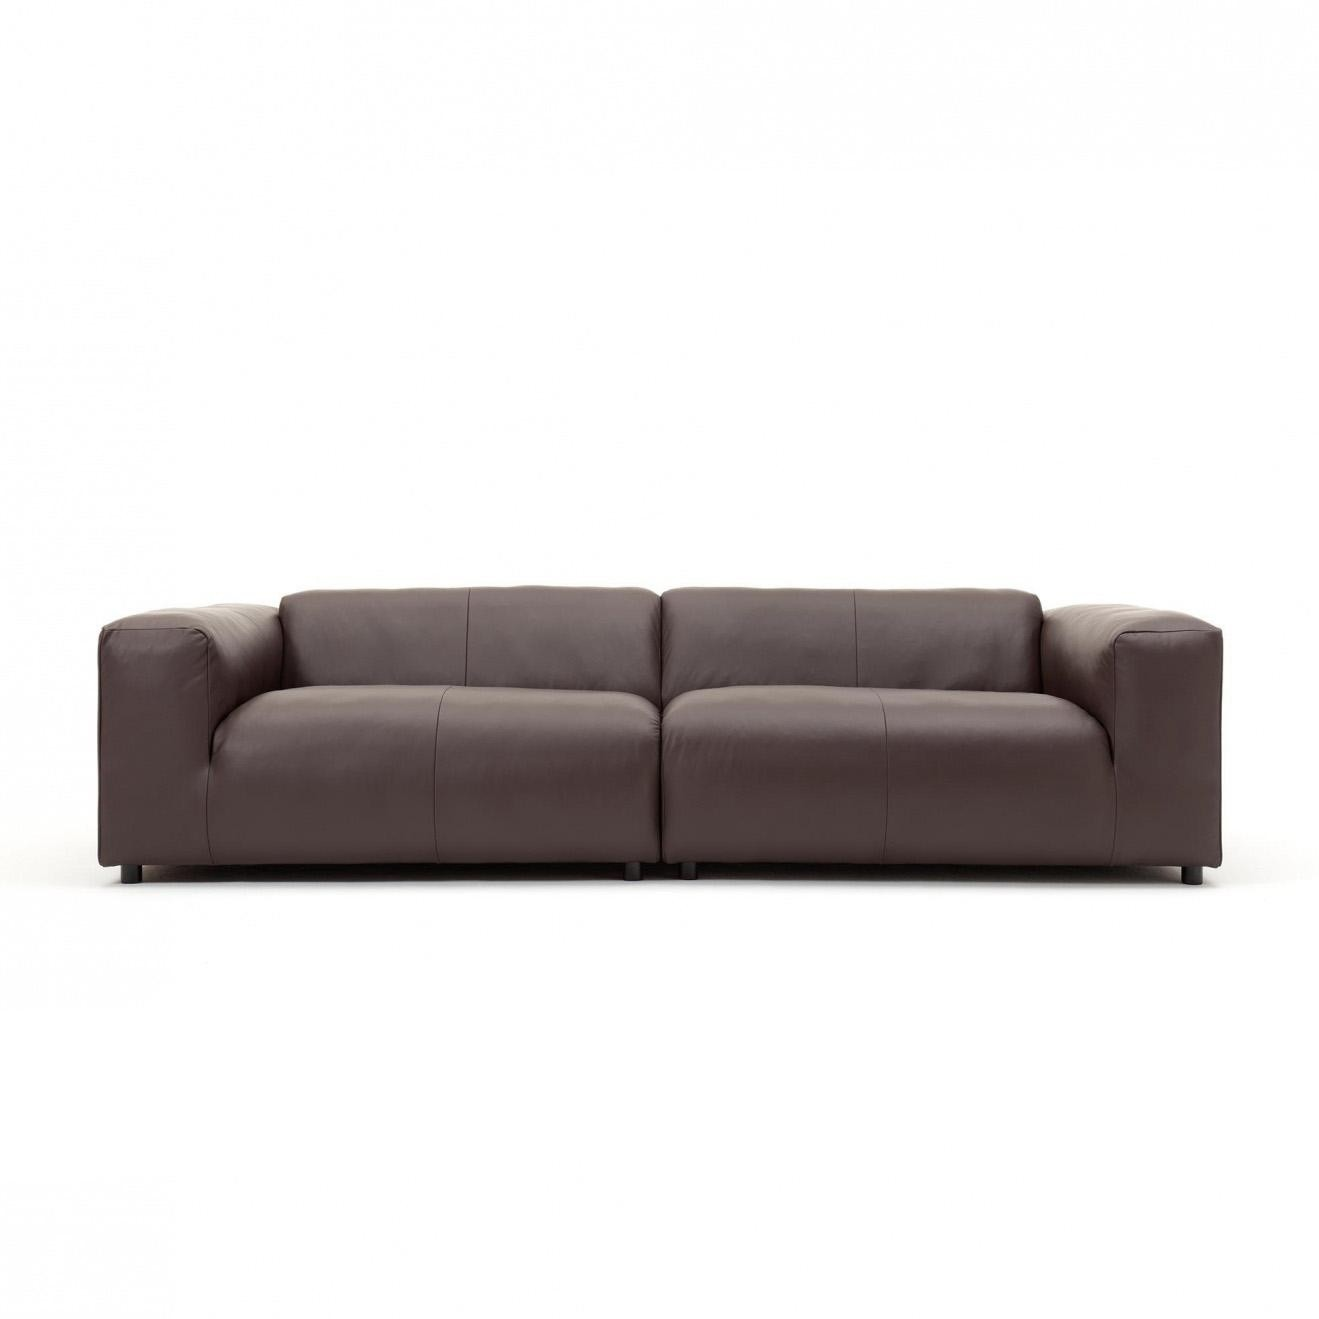 Freistil Rolf Benz Freistil 187 3 Seater Leather Sofa Ambientedirect